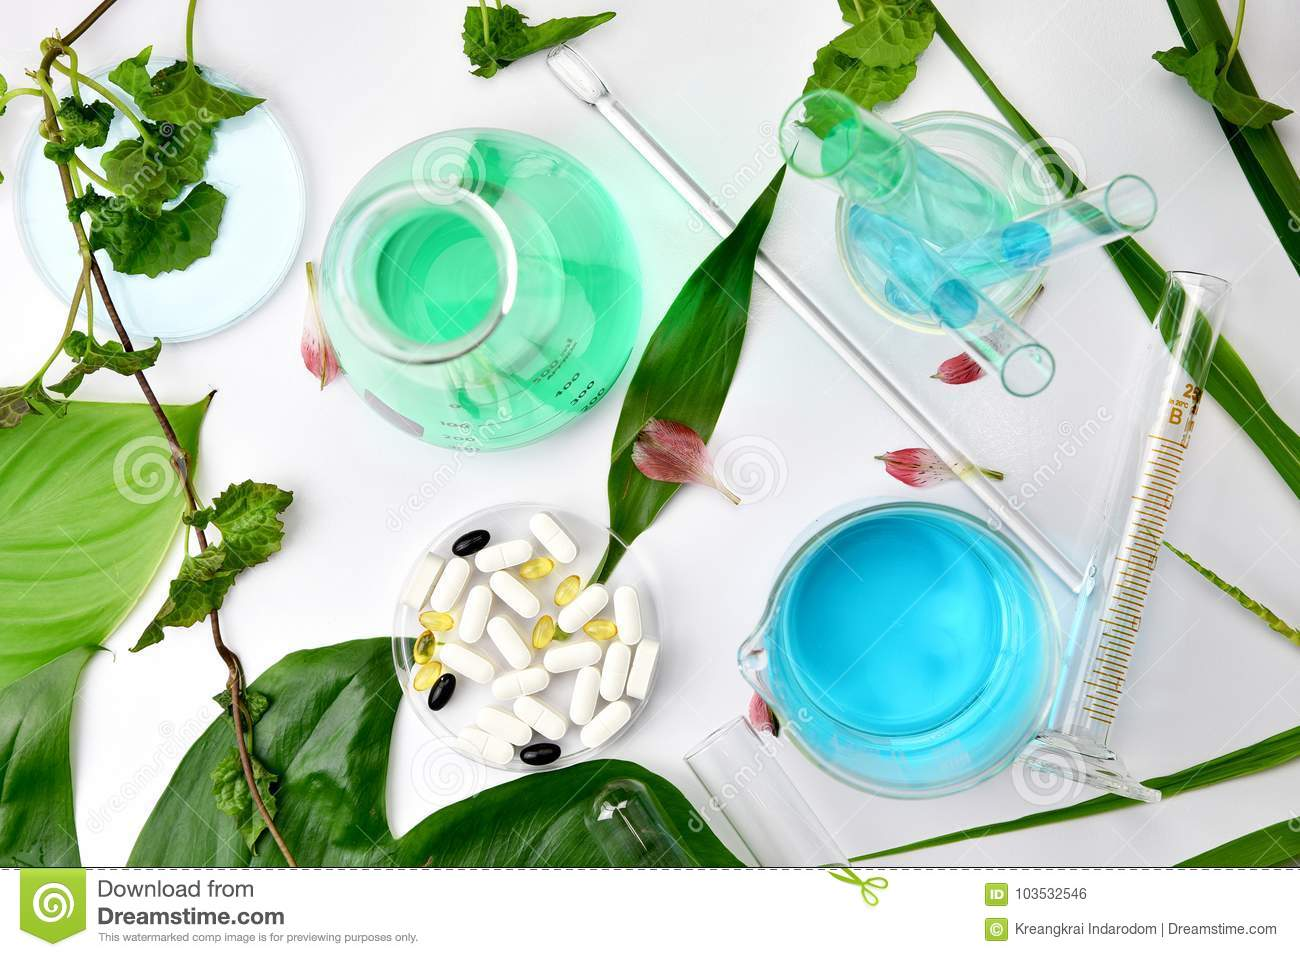 Natural organic botany and scientific glassware, Alternative herb medicine, Natural skin care cosmetic beauty products.